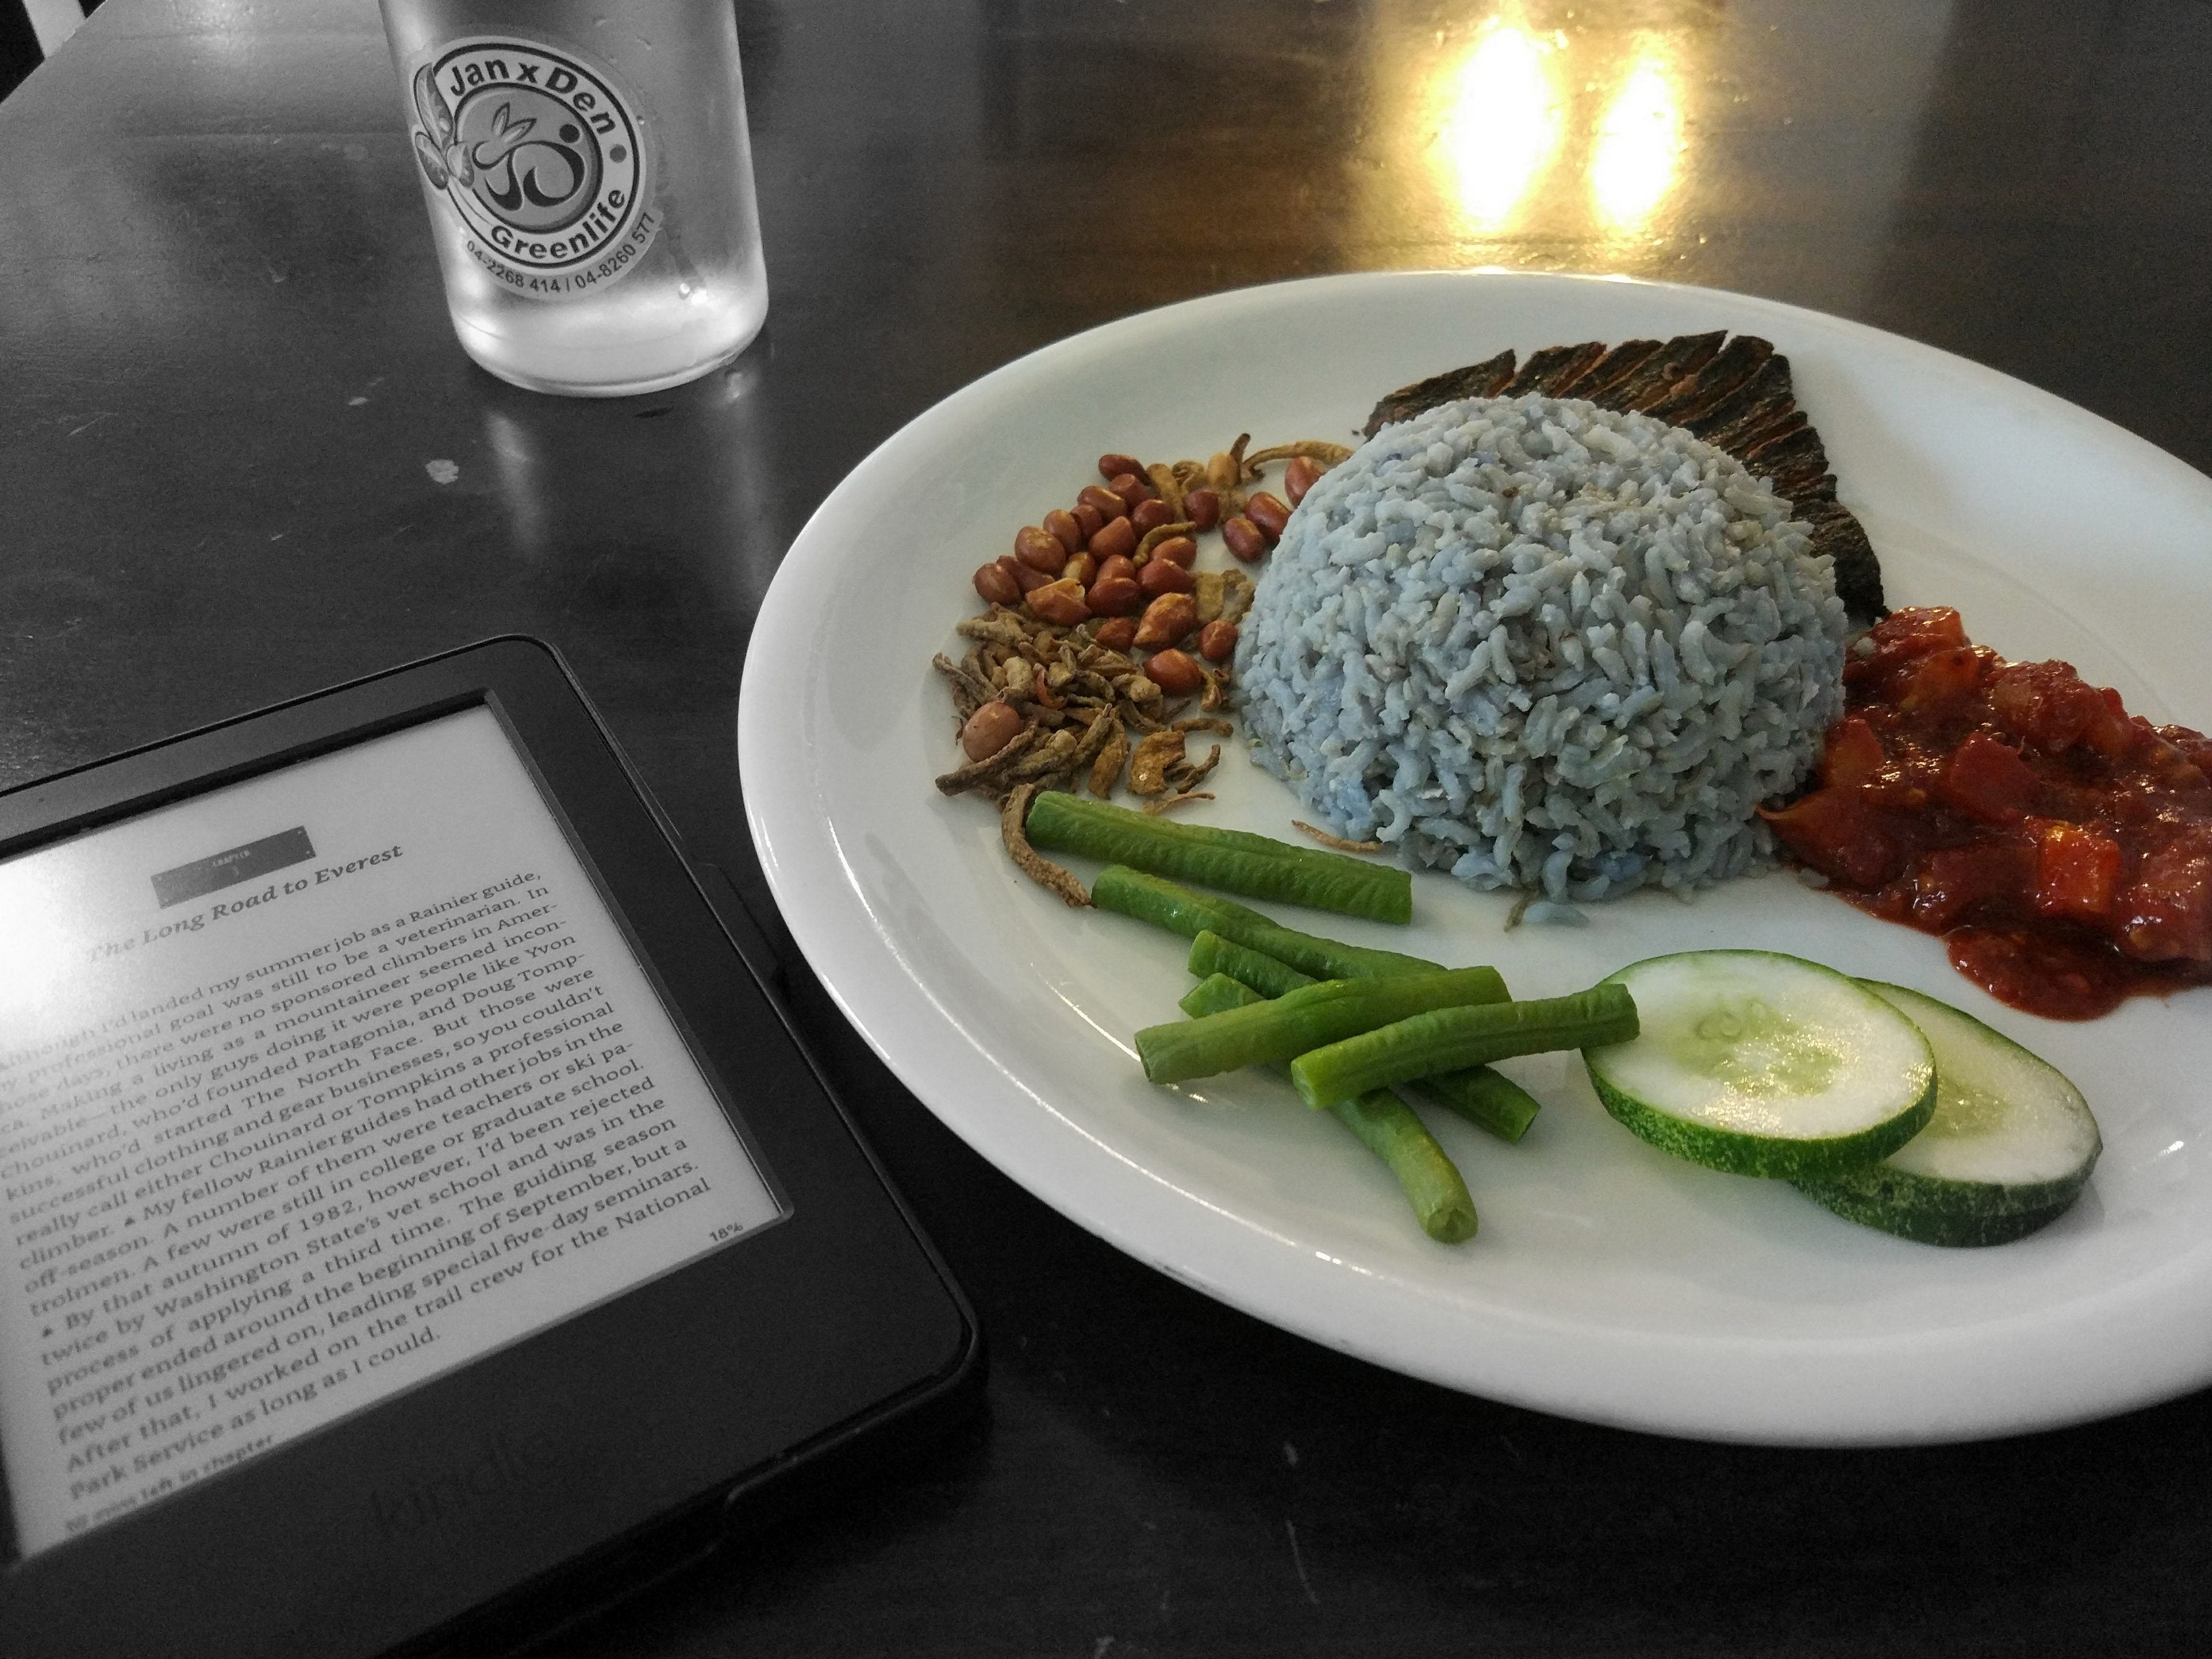 Nasi Lemak. Penang is head over heels in love with its food. Strangely, I was not. Well, at least I tried!